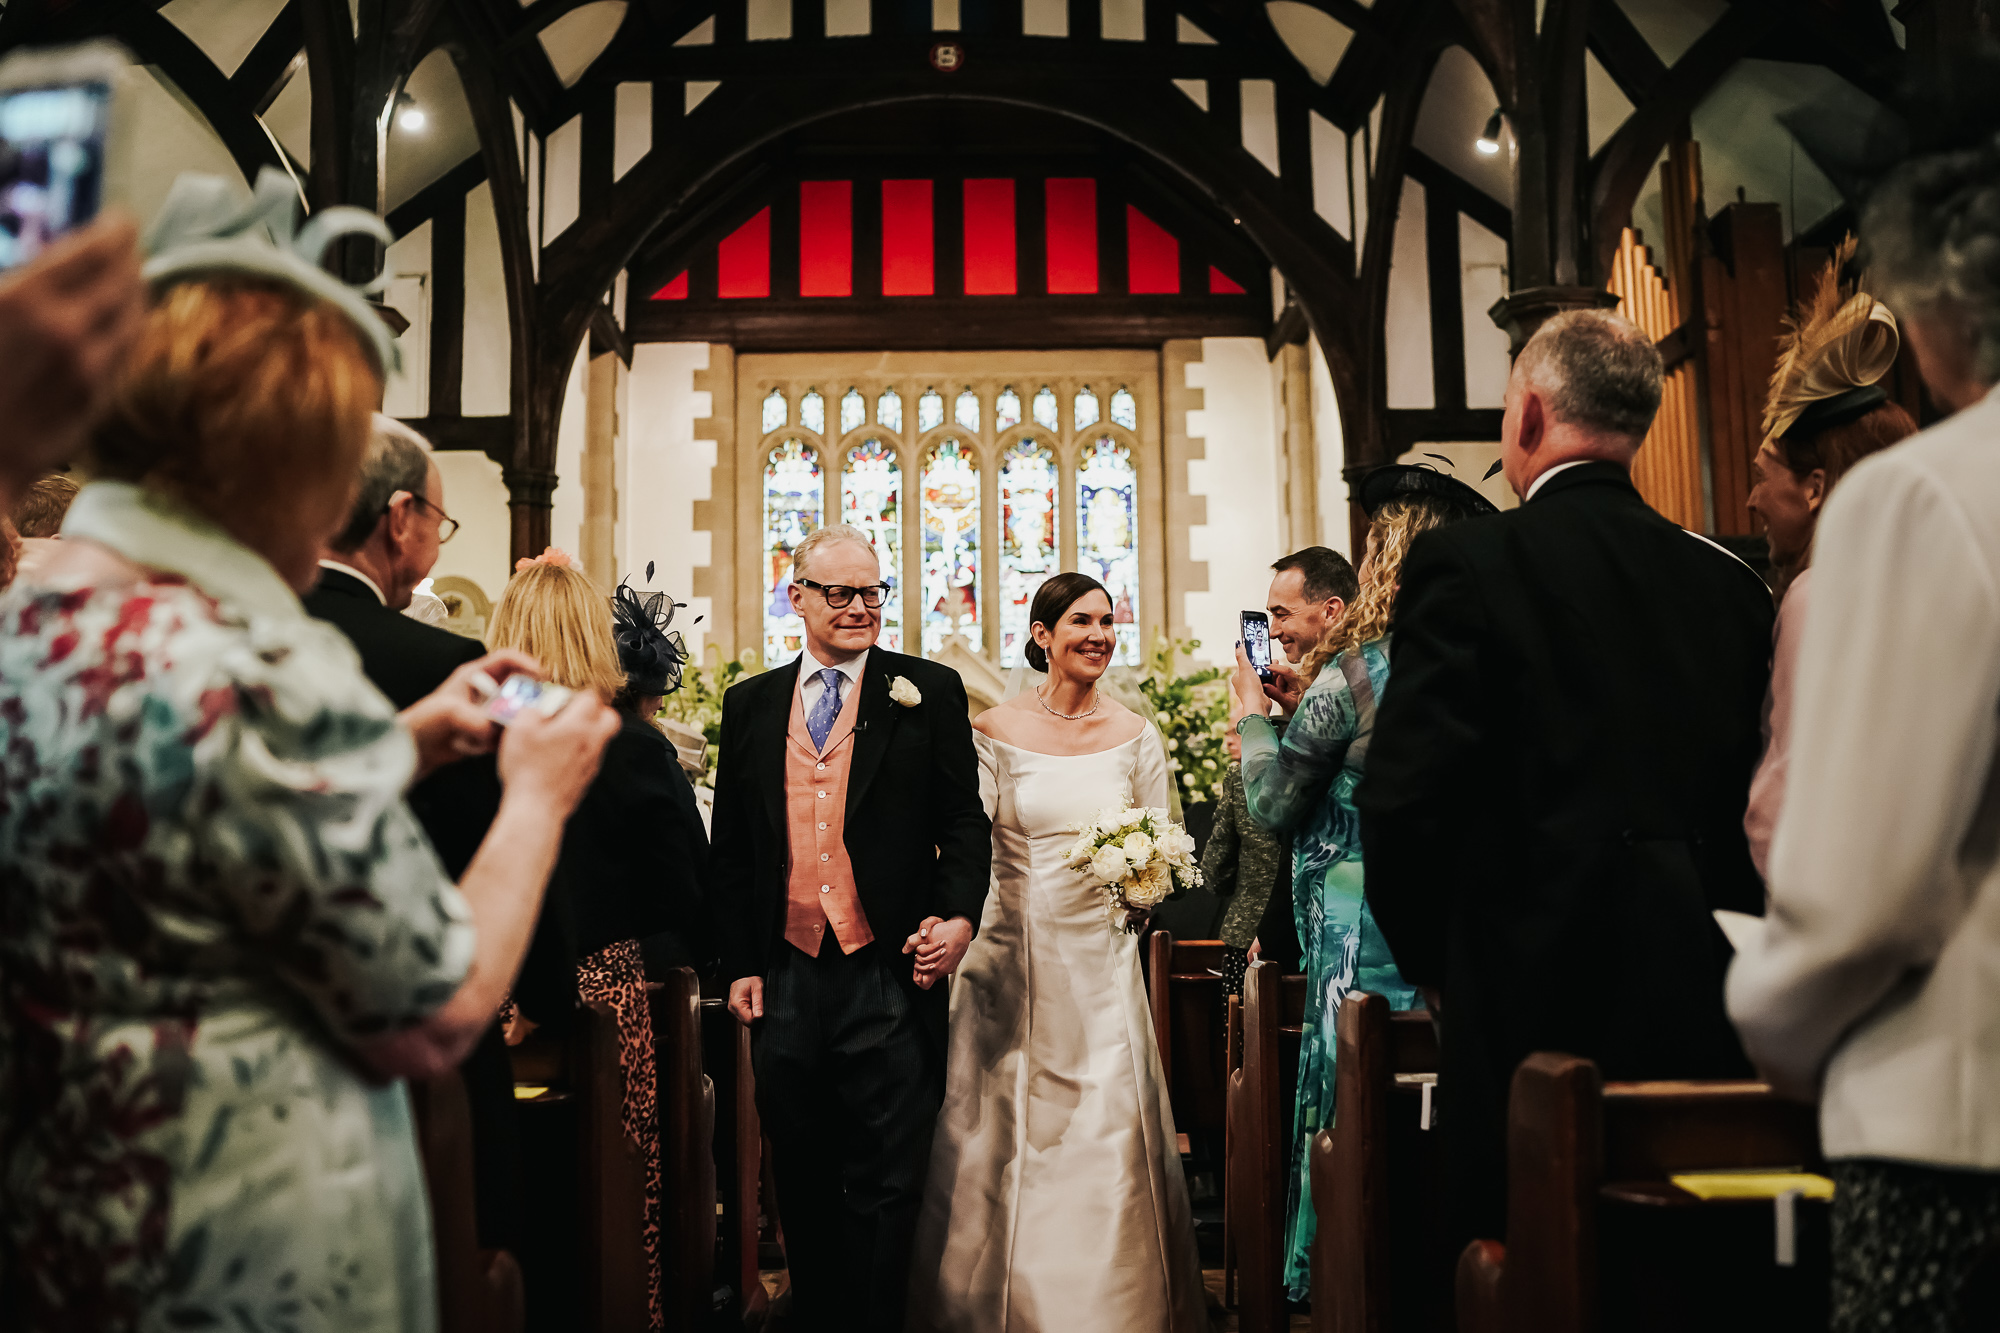 Cheshire wedding at home wedding photography (24 of 49).jpg